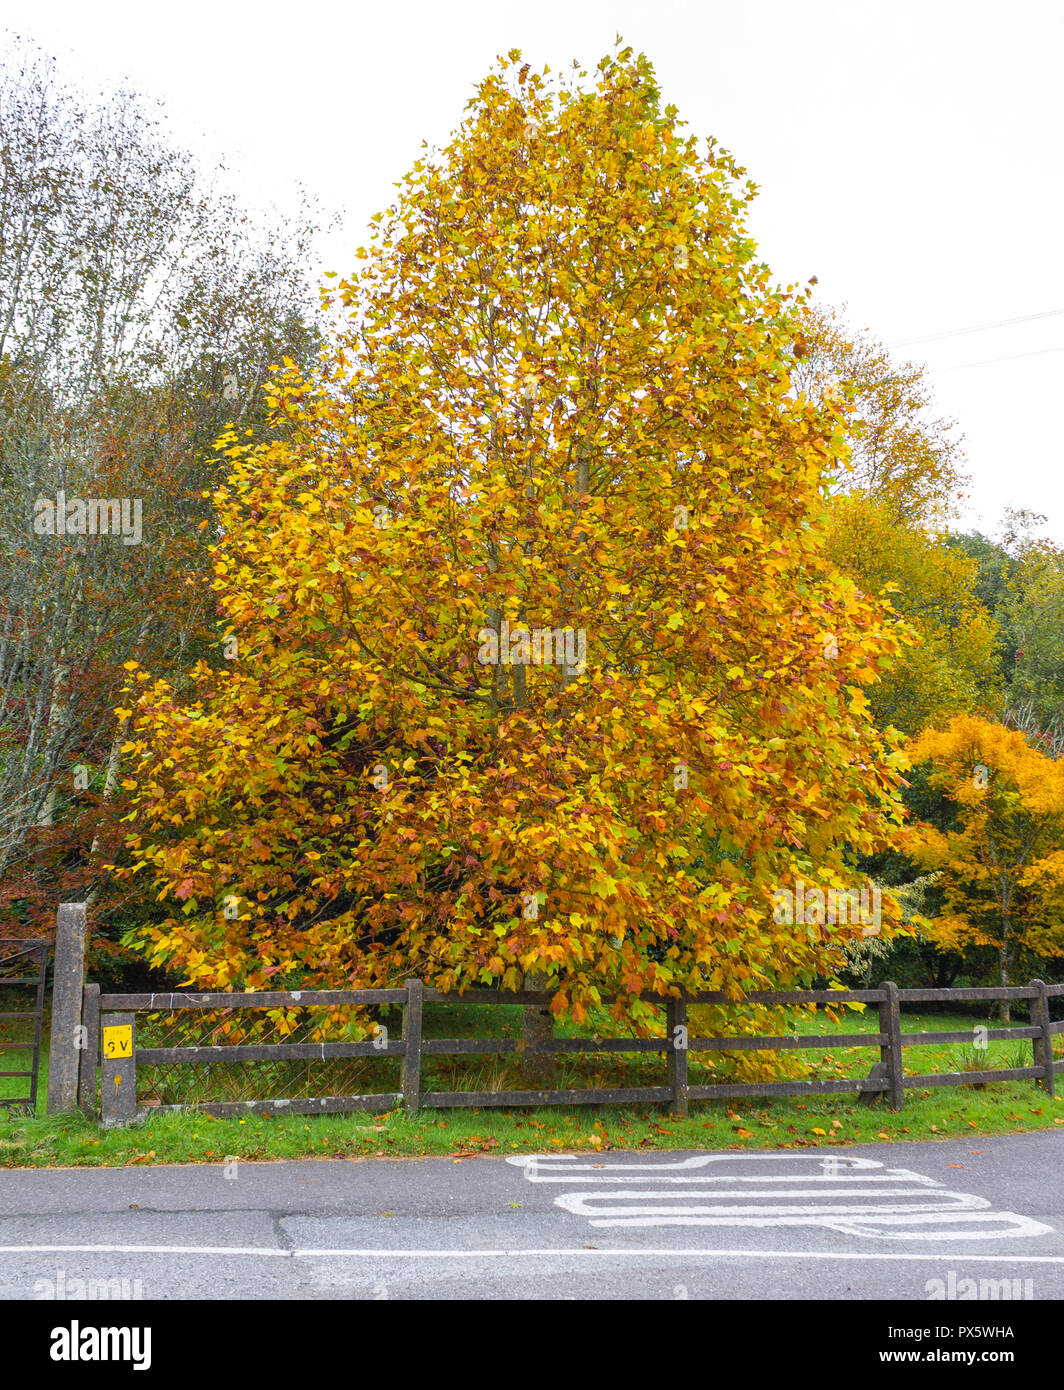 tree-with-leaves-in-autumn-colour-or-color-PX5WHA.jpg